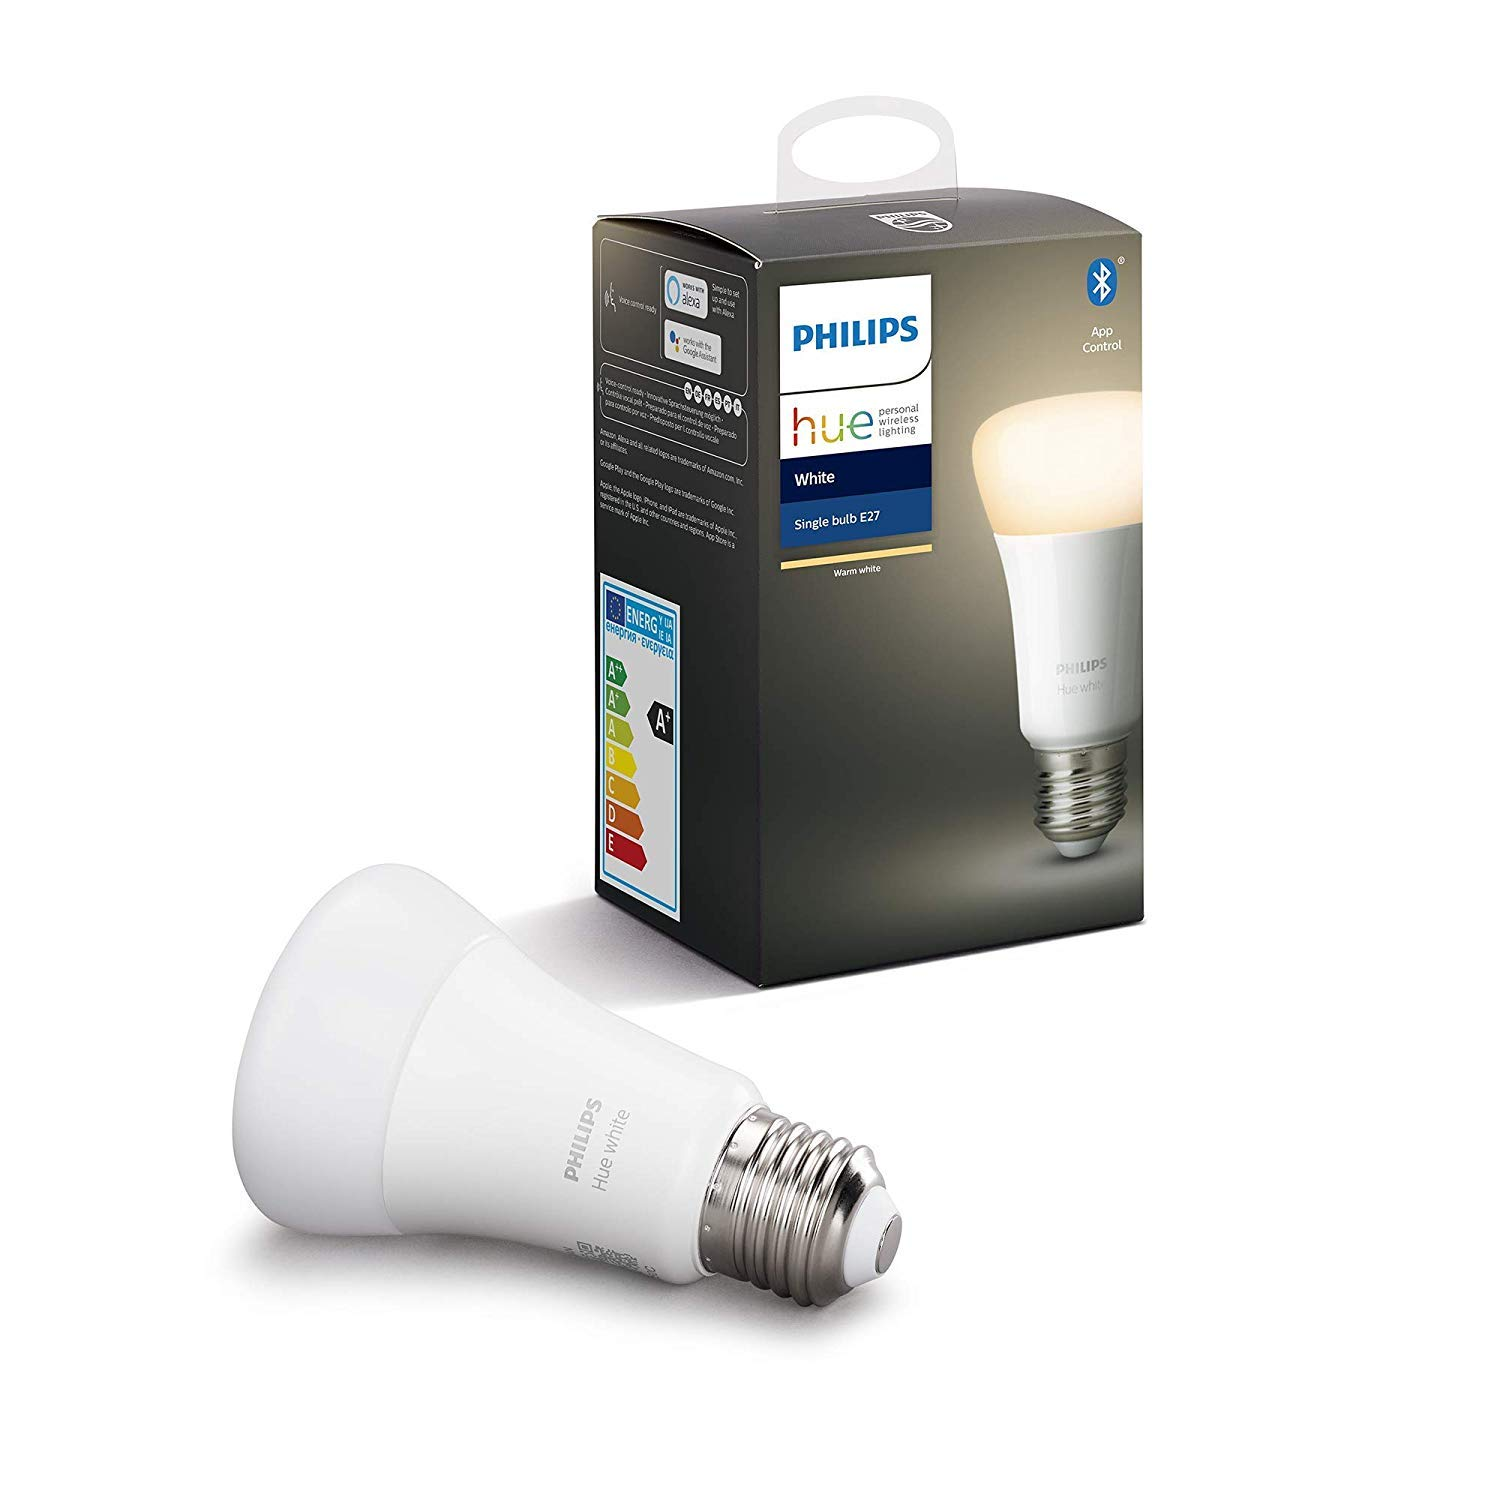 Philips Lighting Hue White Lampadina LED Connessa,